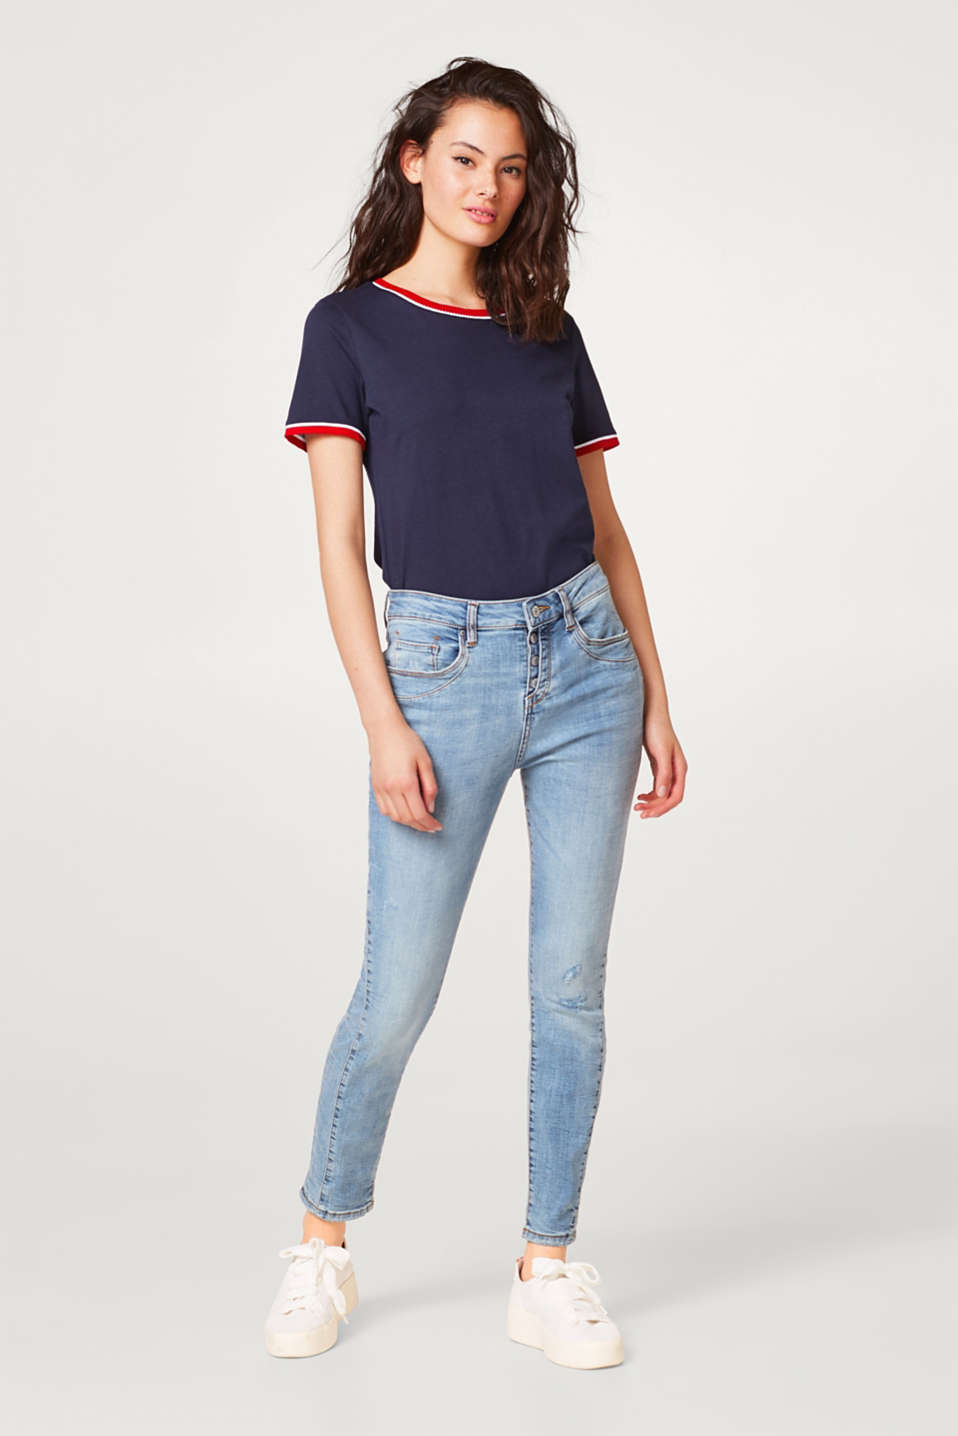 Esprit - Jean stretch au look usé